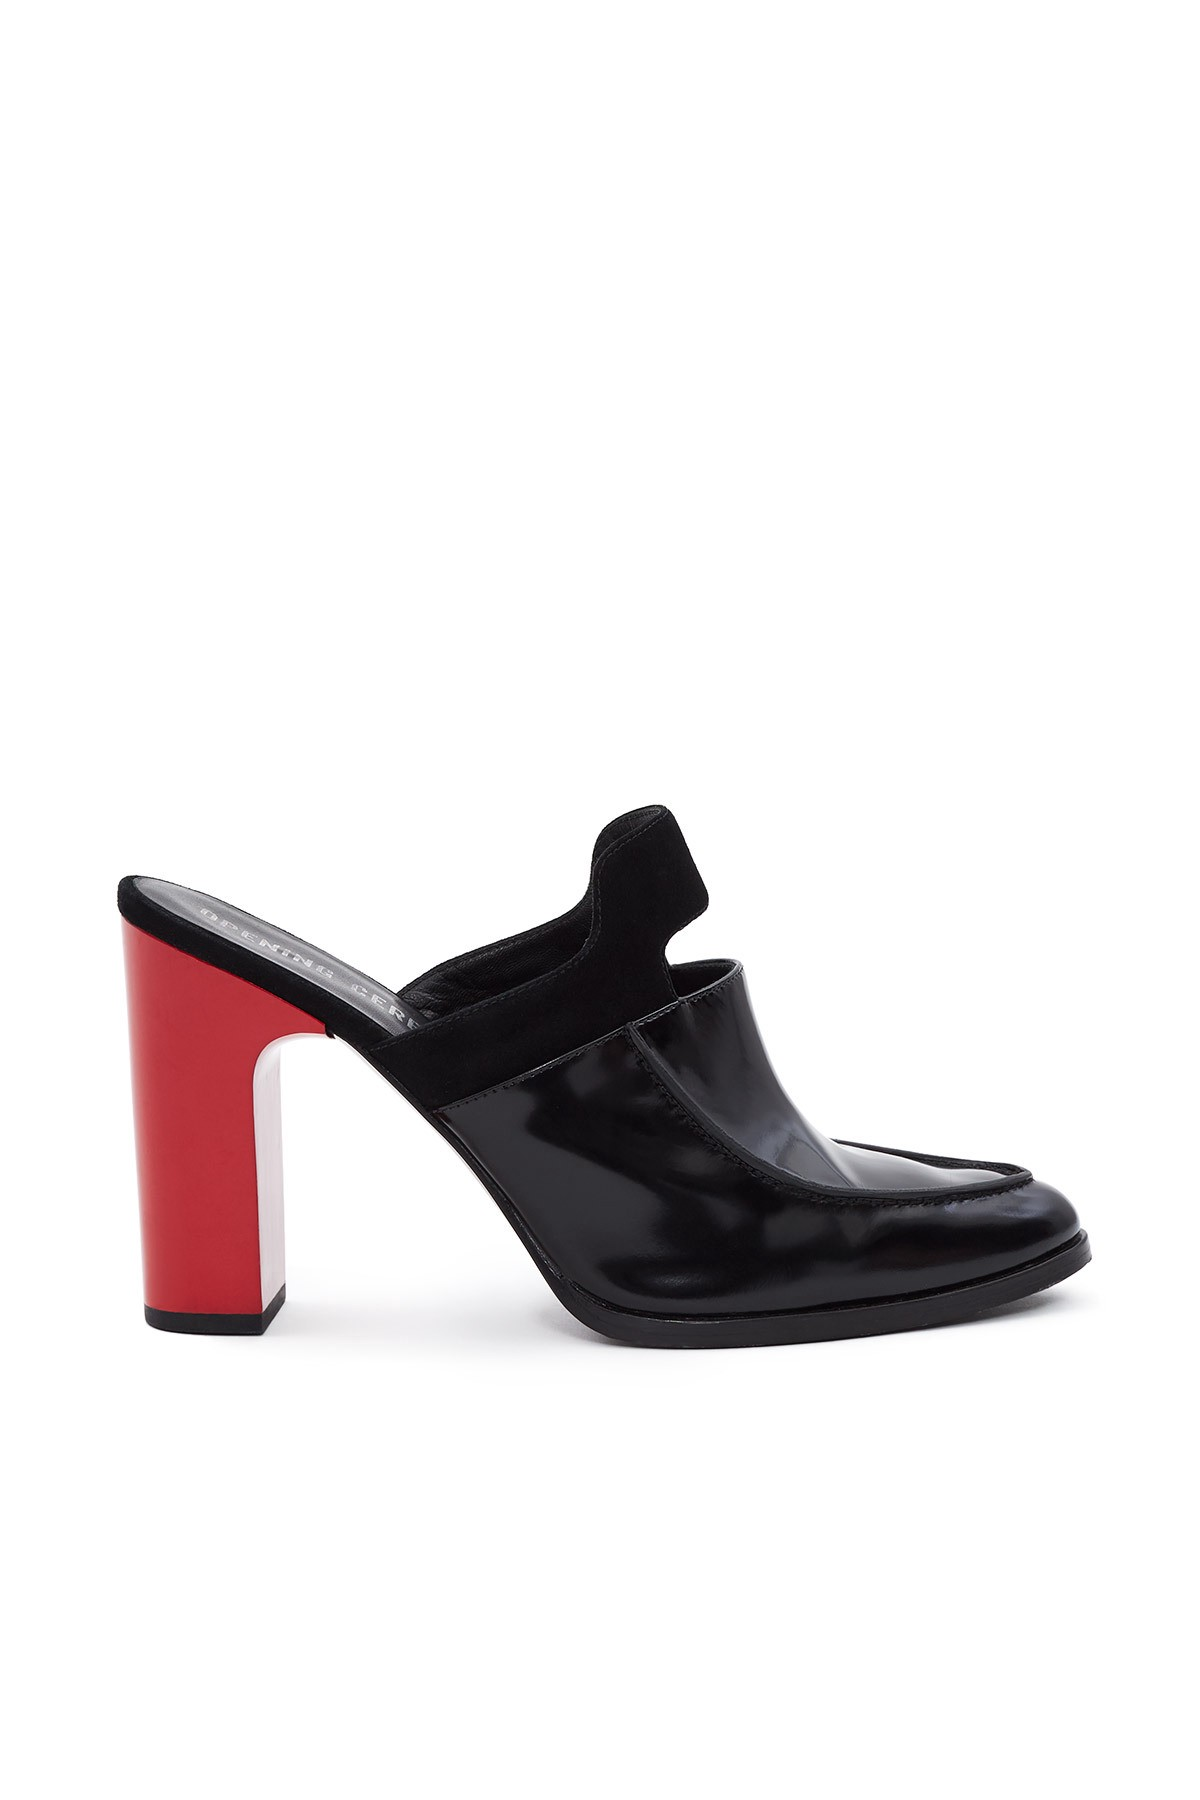 Opening Ceremony Leathers MORGAAN MULES - BLACK